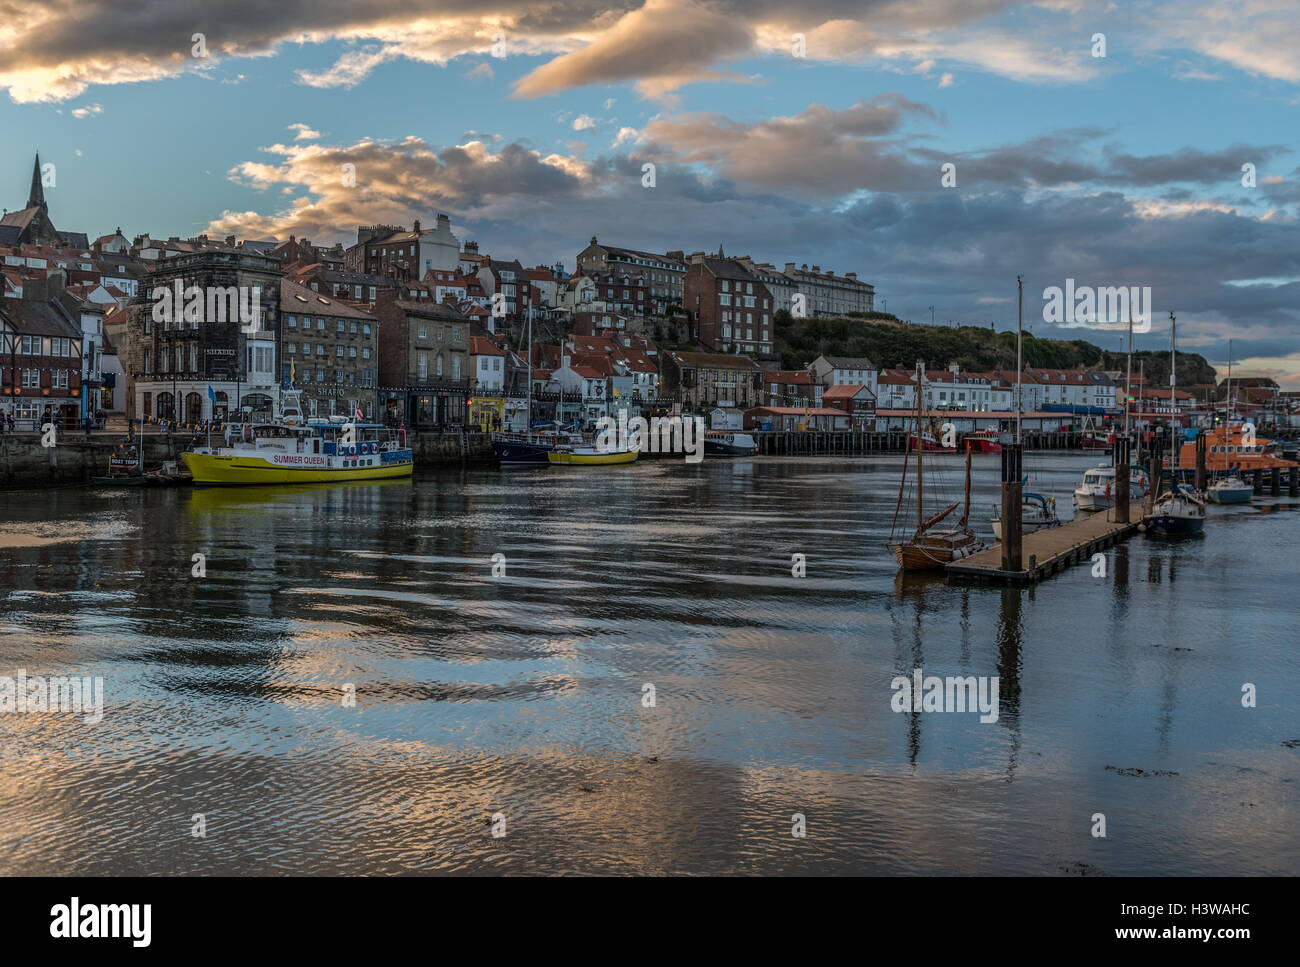 Whitby and the River Esk at dusk - Stock Image